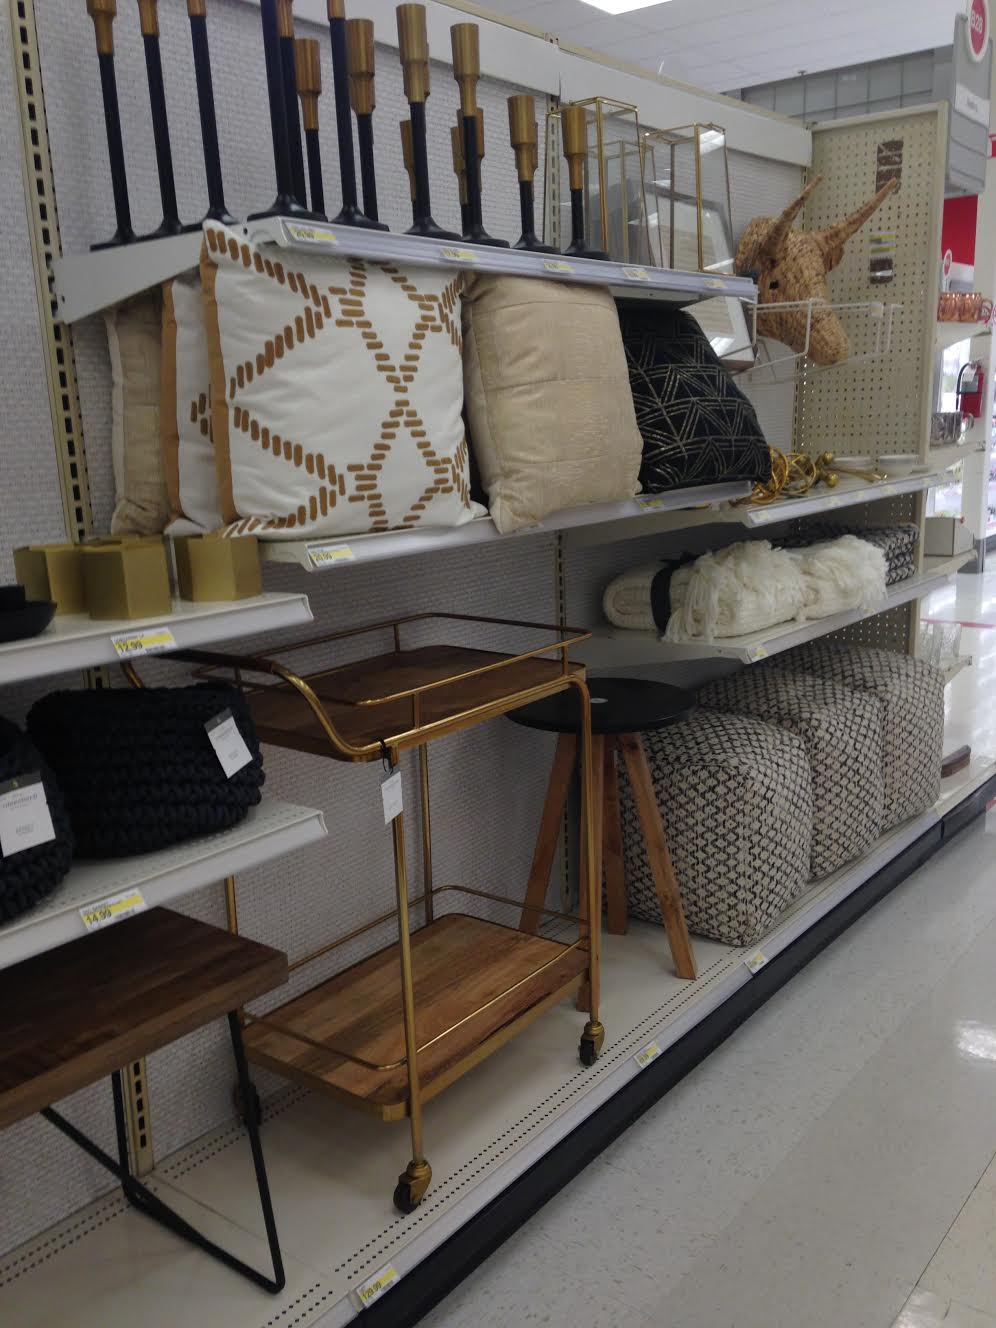 Let 39 s go shopping fall decor inspiration from target little house of four creating a Target fall home decor